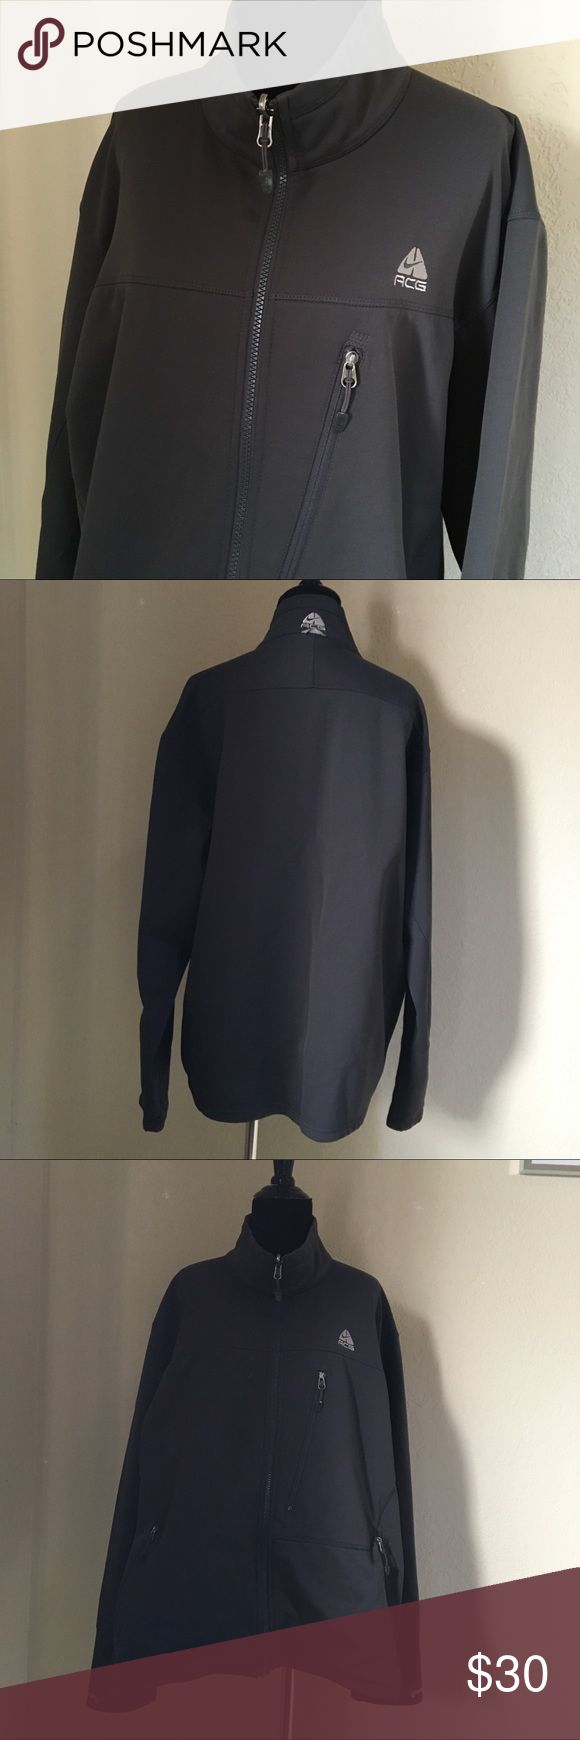 Men's Nike Fit Therma Zip Up Jacket DETAILS: Dark Gray Men's Long Sleeve Nike ACG Fit Therma Zip Up Jacket  CONDITION: Excellent  SIZE: Men's XL  SHIPS QUICKLY! same or next business day if purchased before 12pm PST / 1-2 business days if after 12pm PST Nike Jackets & Coats Lightweight & Shirt Jackets